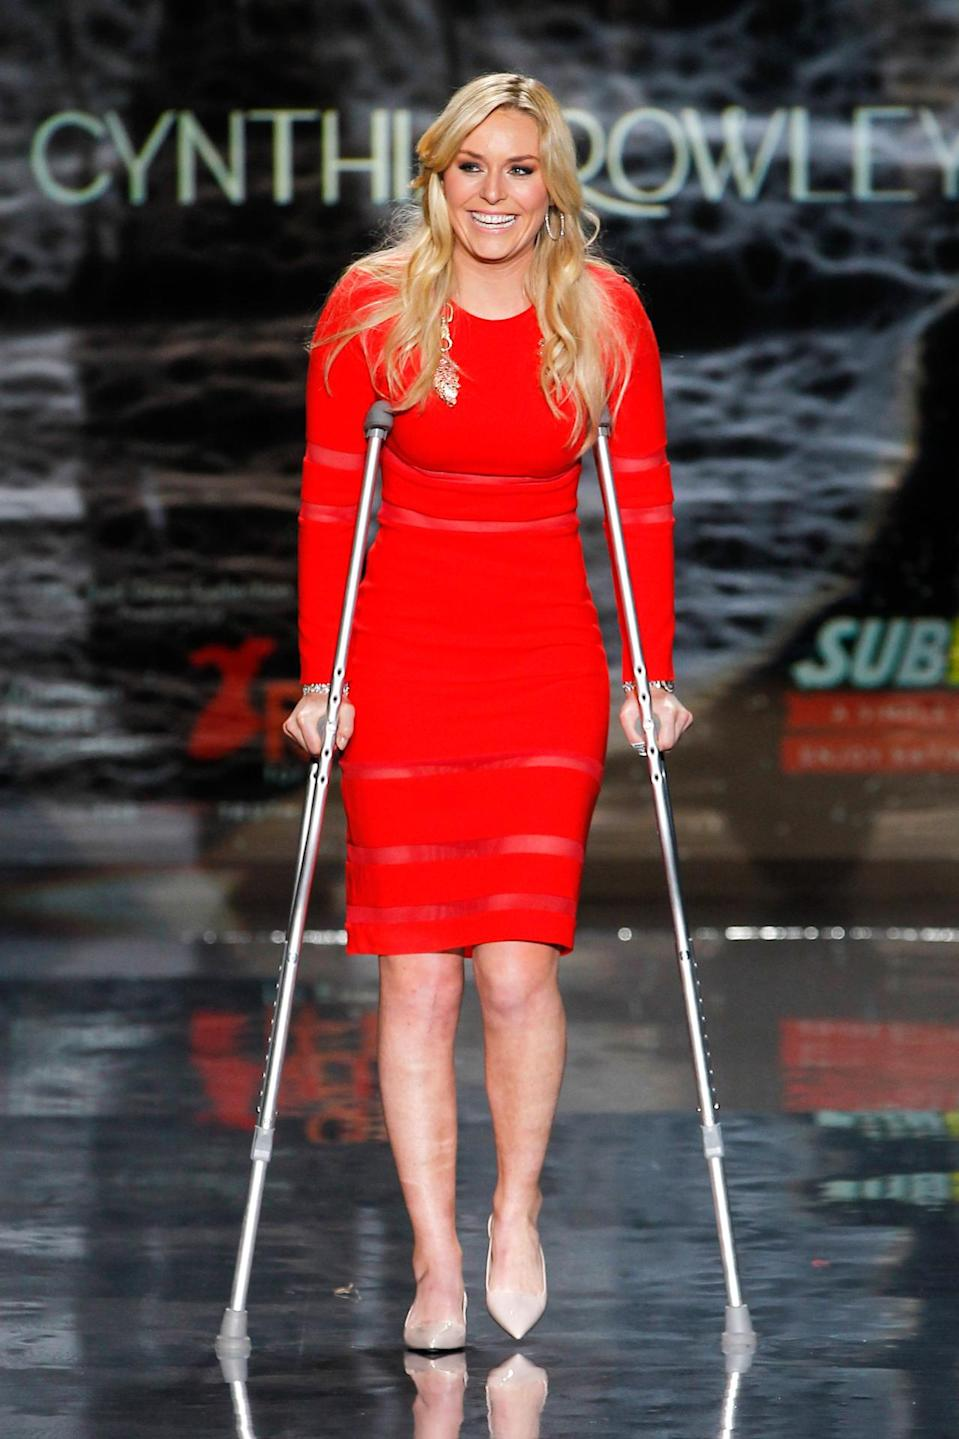 <p>Lindsey Vonn had her runway moment at the Red Dress fashion show in 2014, taking her turn on the catwalk on crutches, like the boss she is. <i>(Photo: Getty)</i></p>